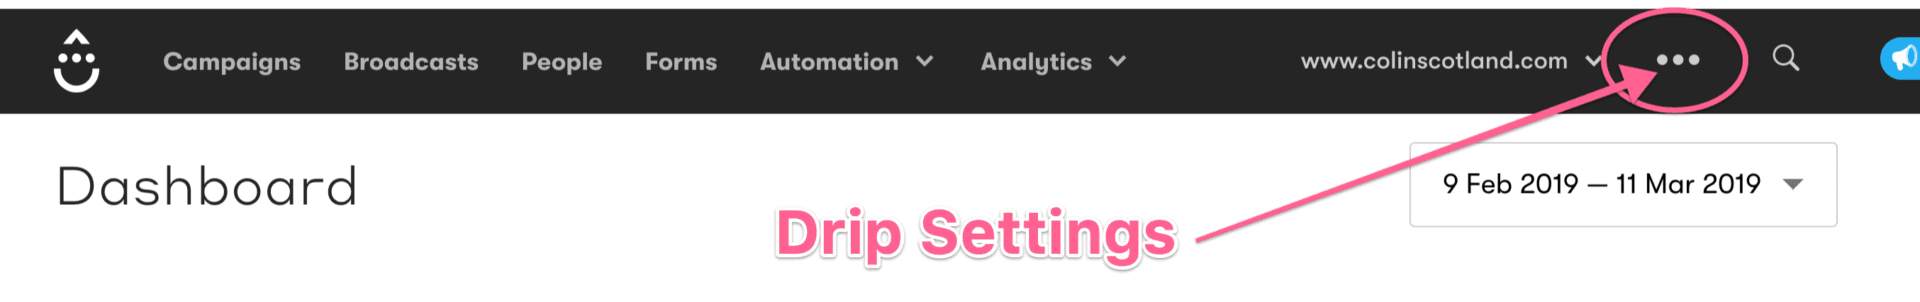 Drip Dashboard Settings Menu